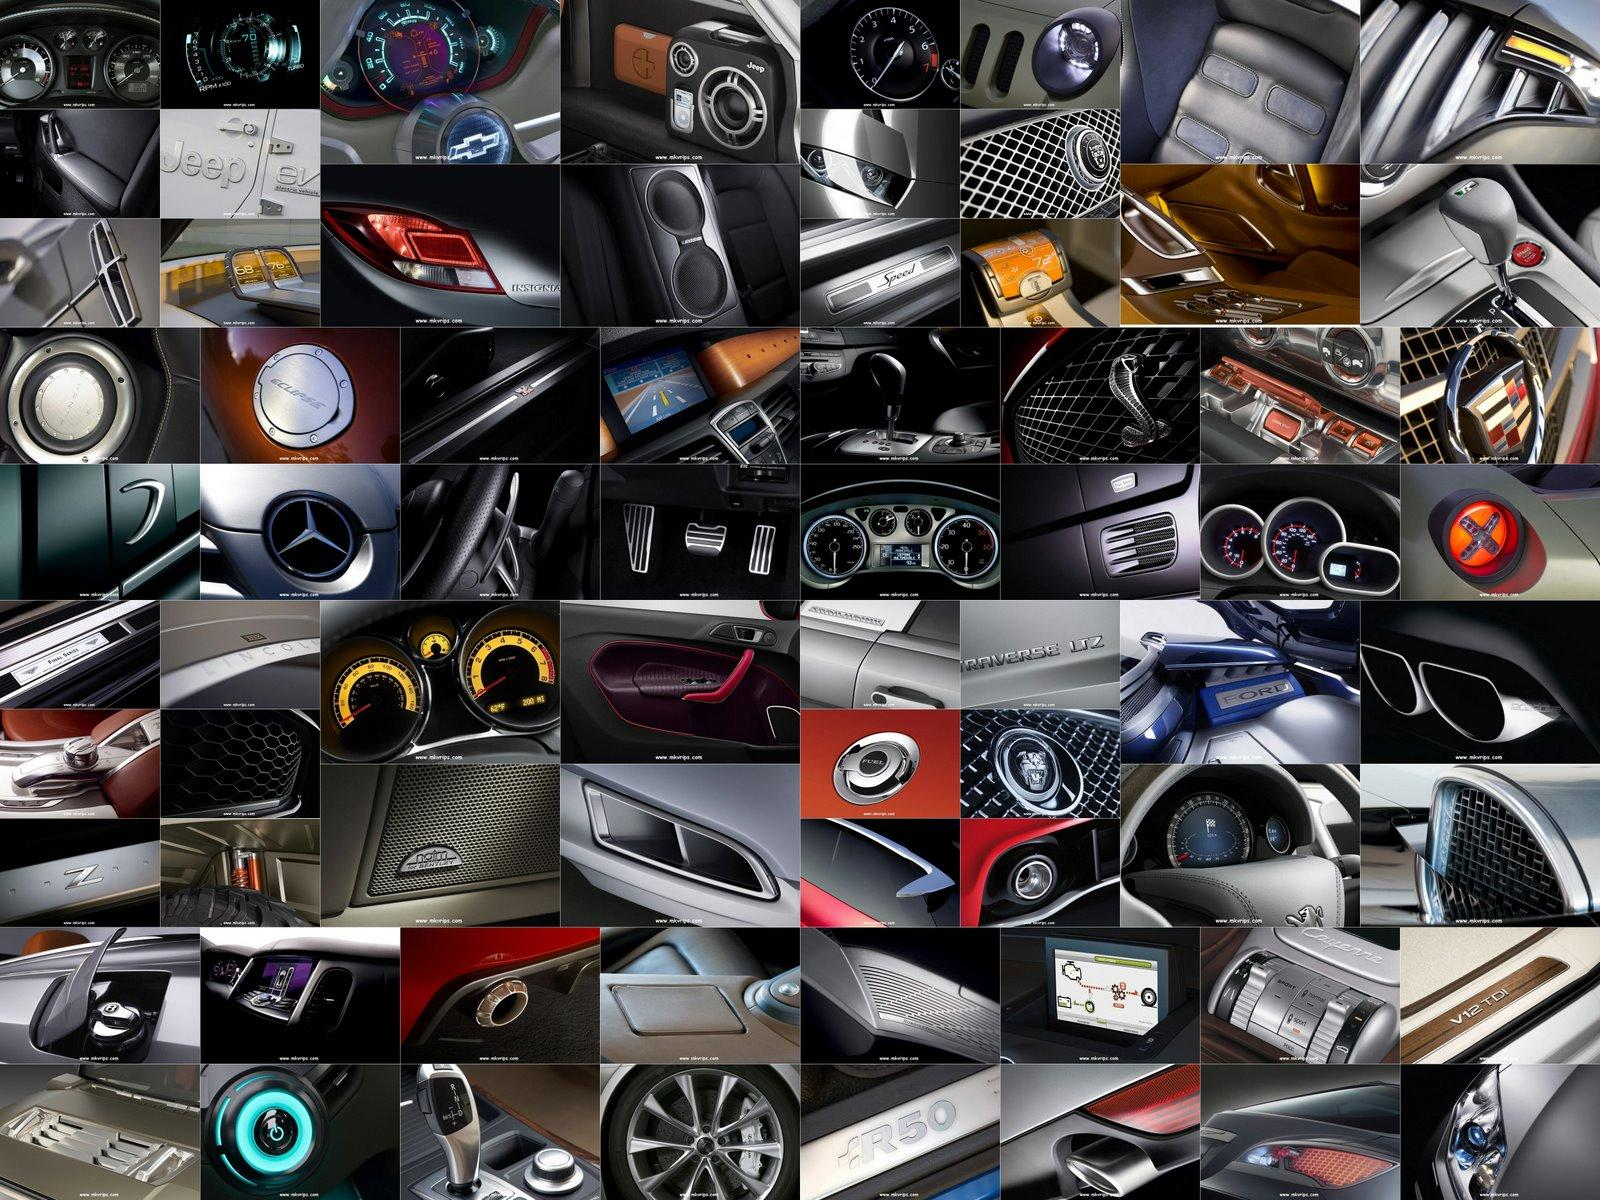 Hd Car Wallpapers Car Accessories